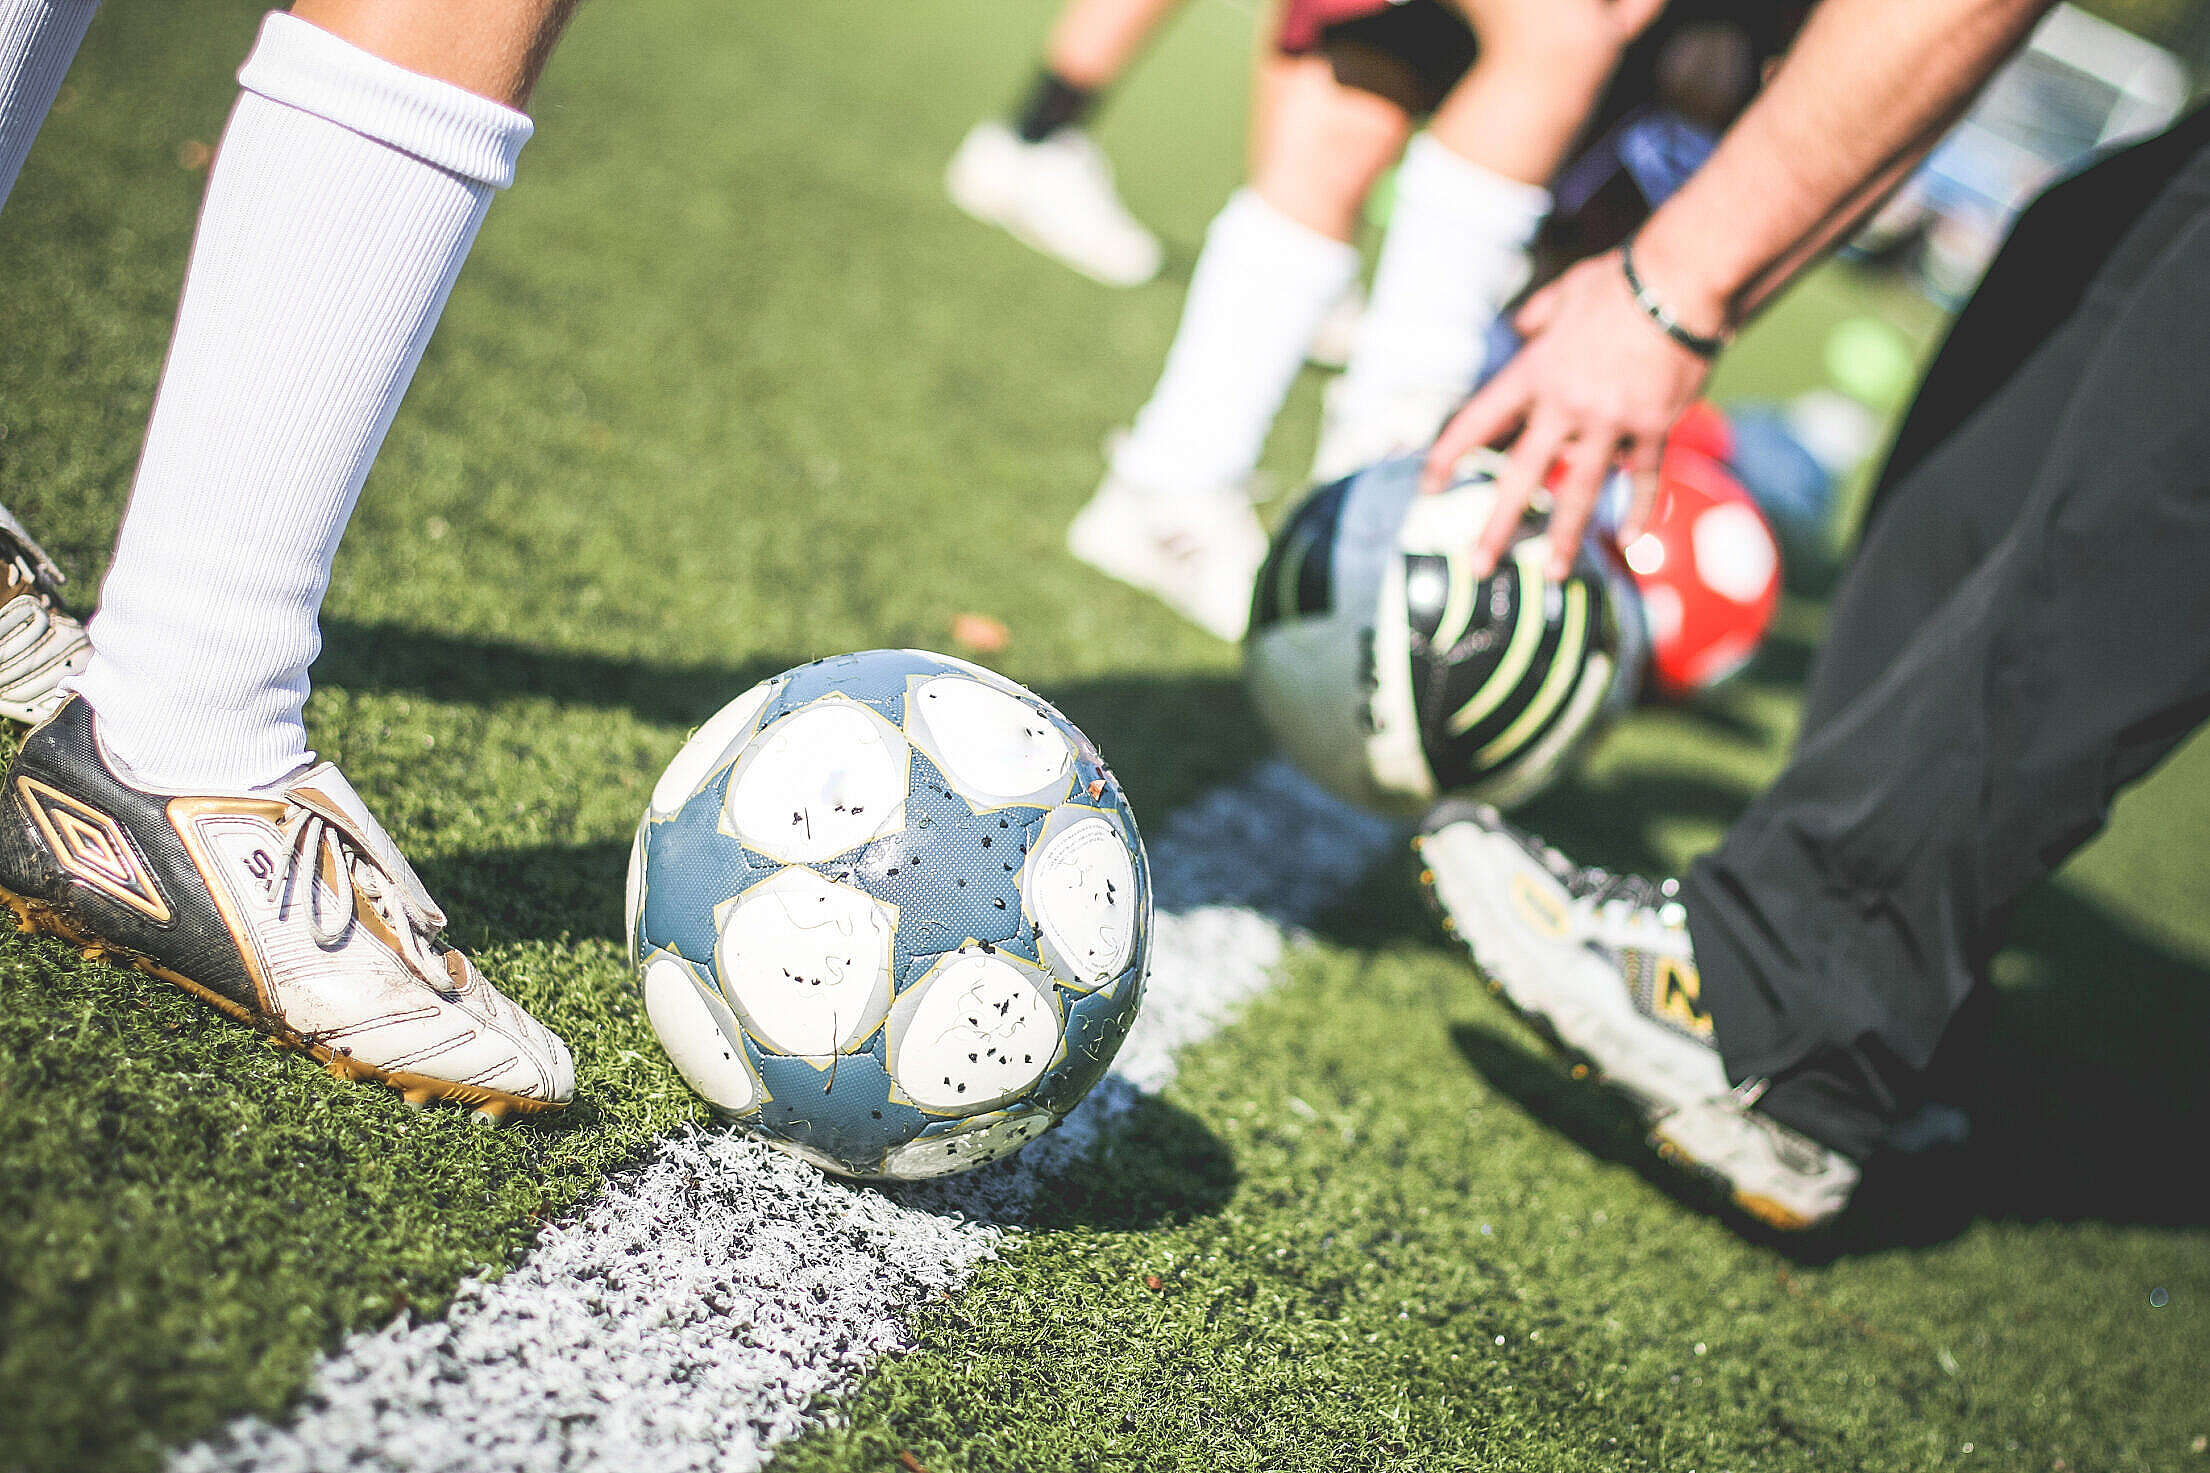 Football Field Training Players with Soccer Ball Free Stock Photo